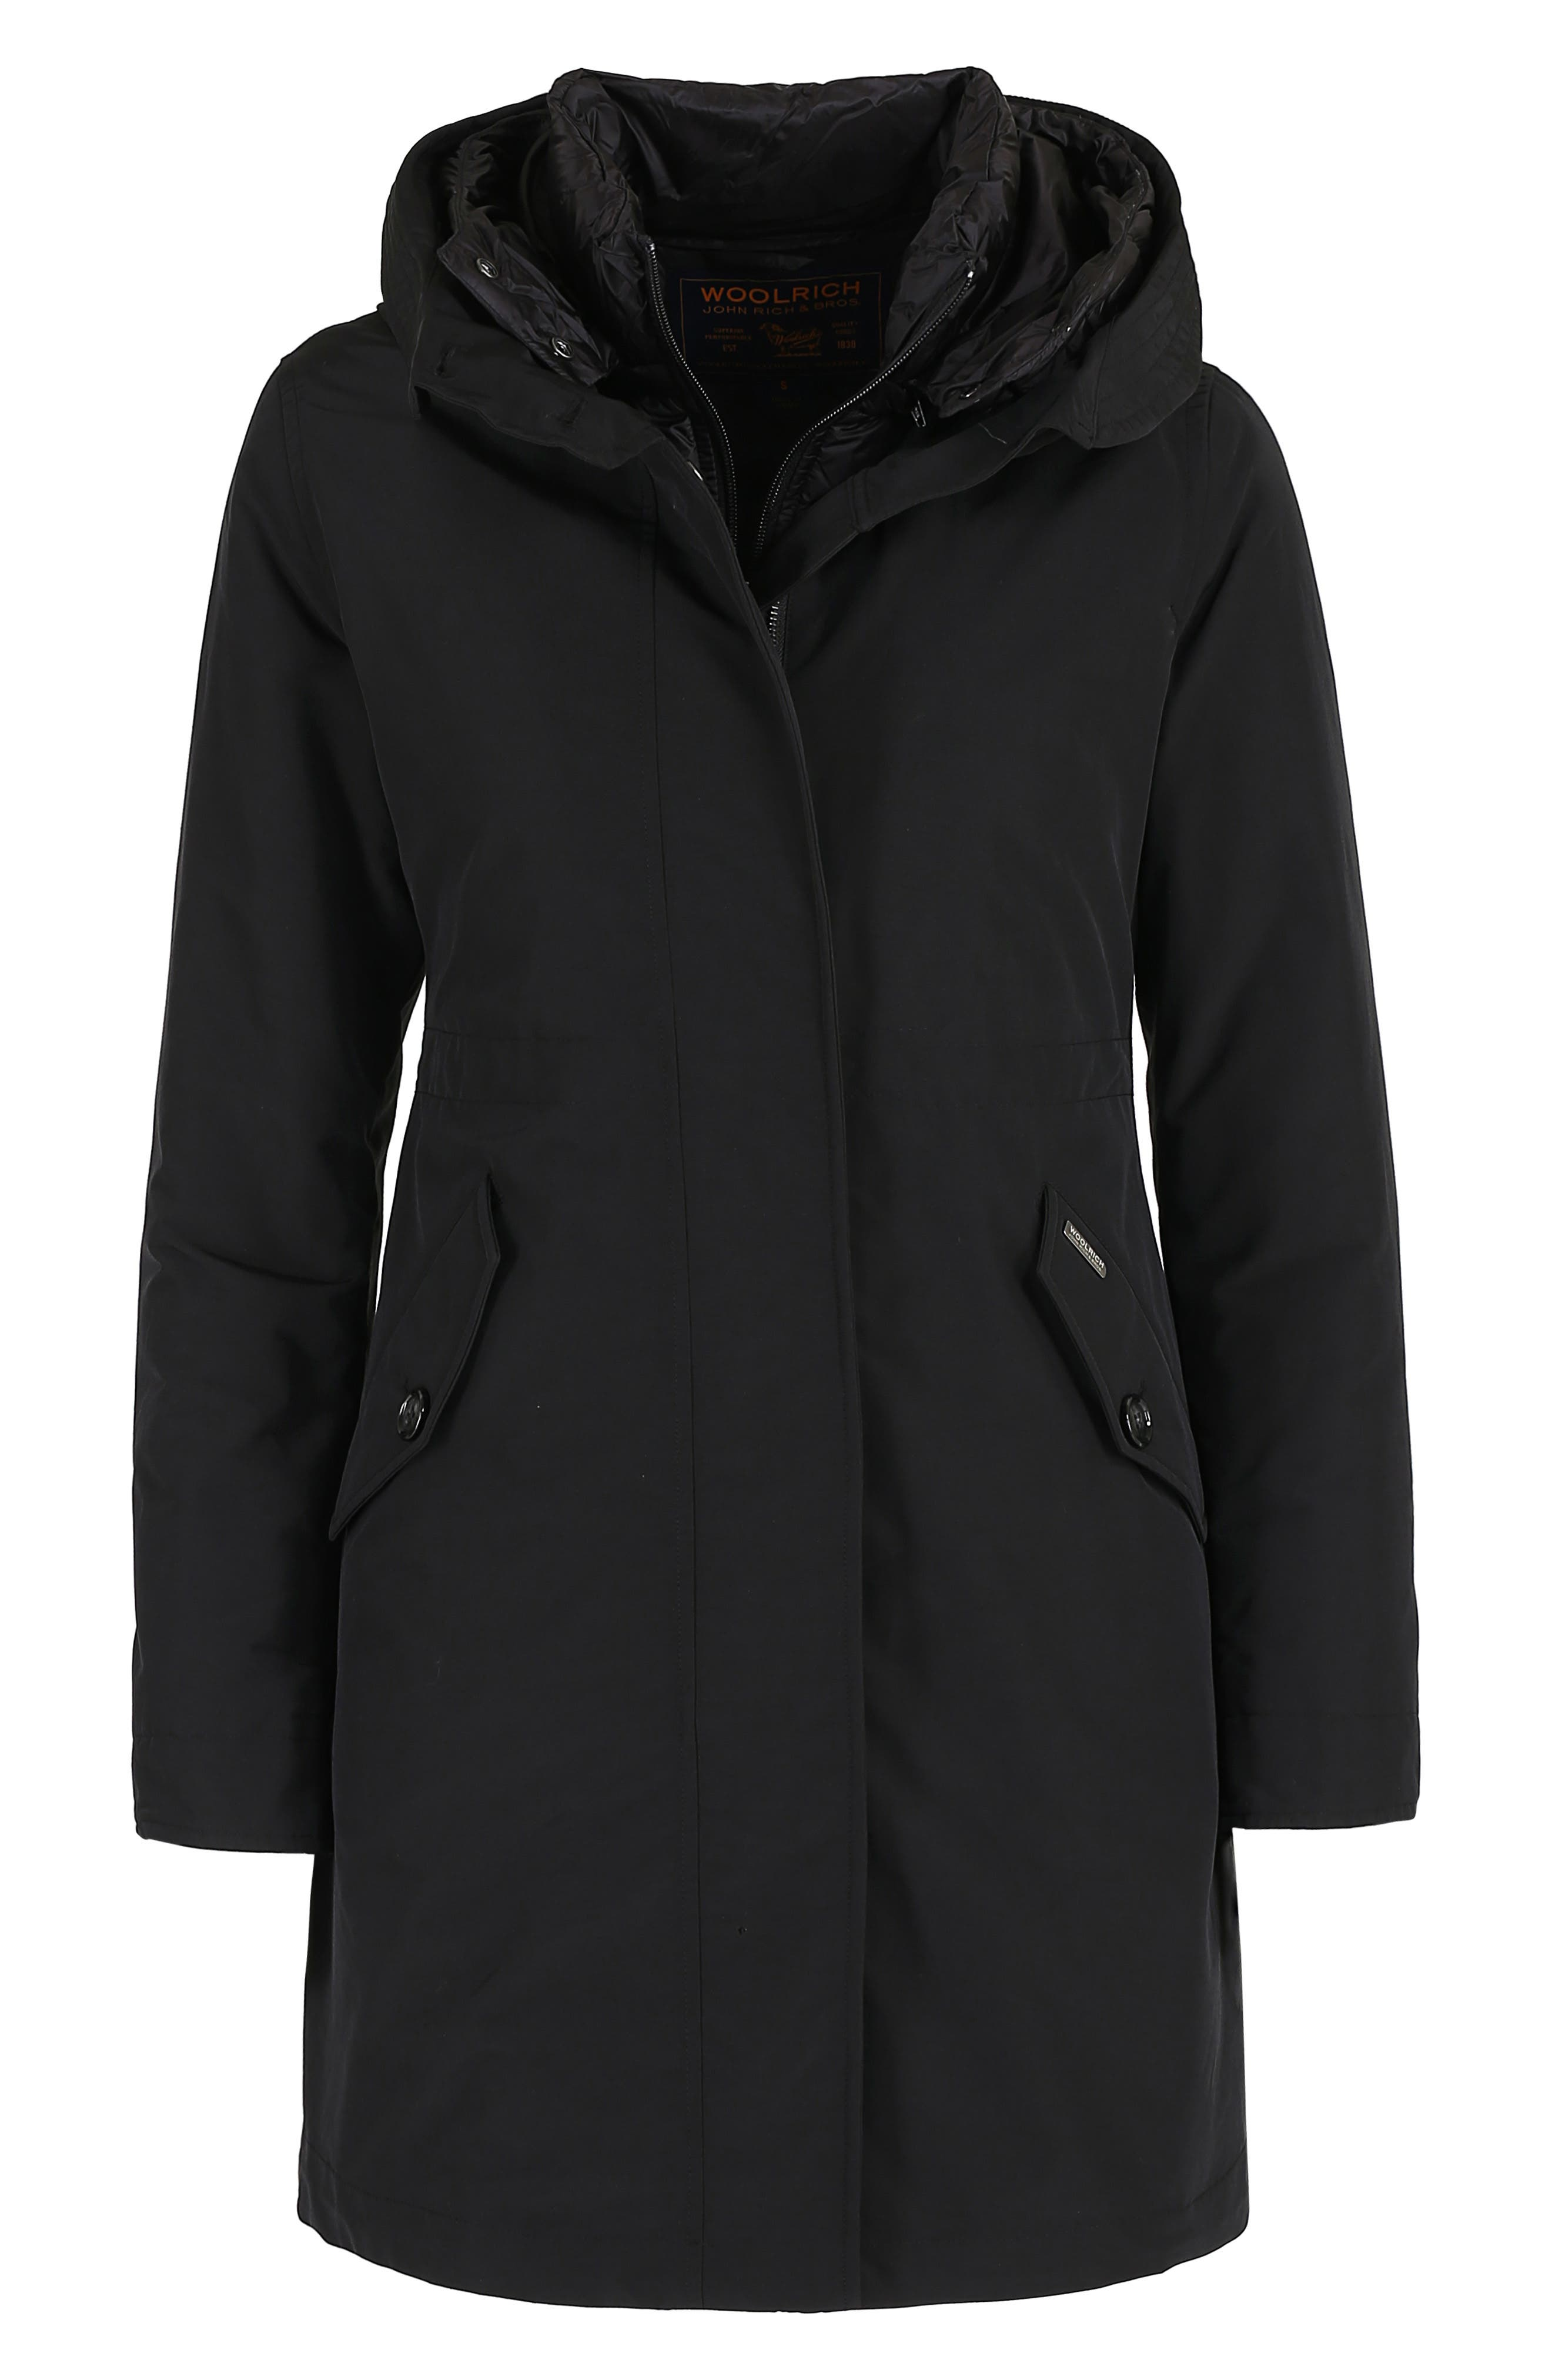 WOOLRICH, Long Military 3-in-1 Parka, Alternate thumbnail 10, color, 001